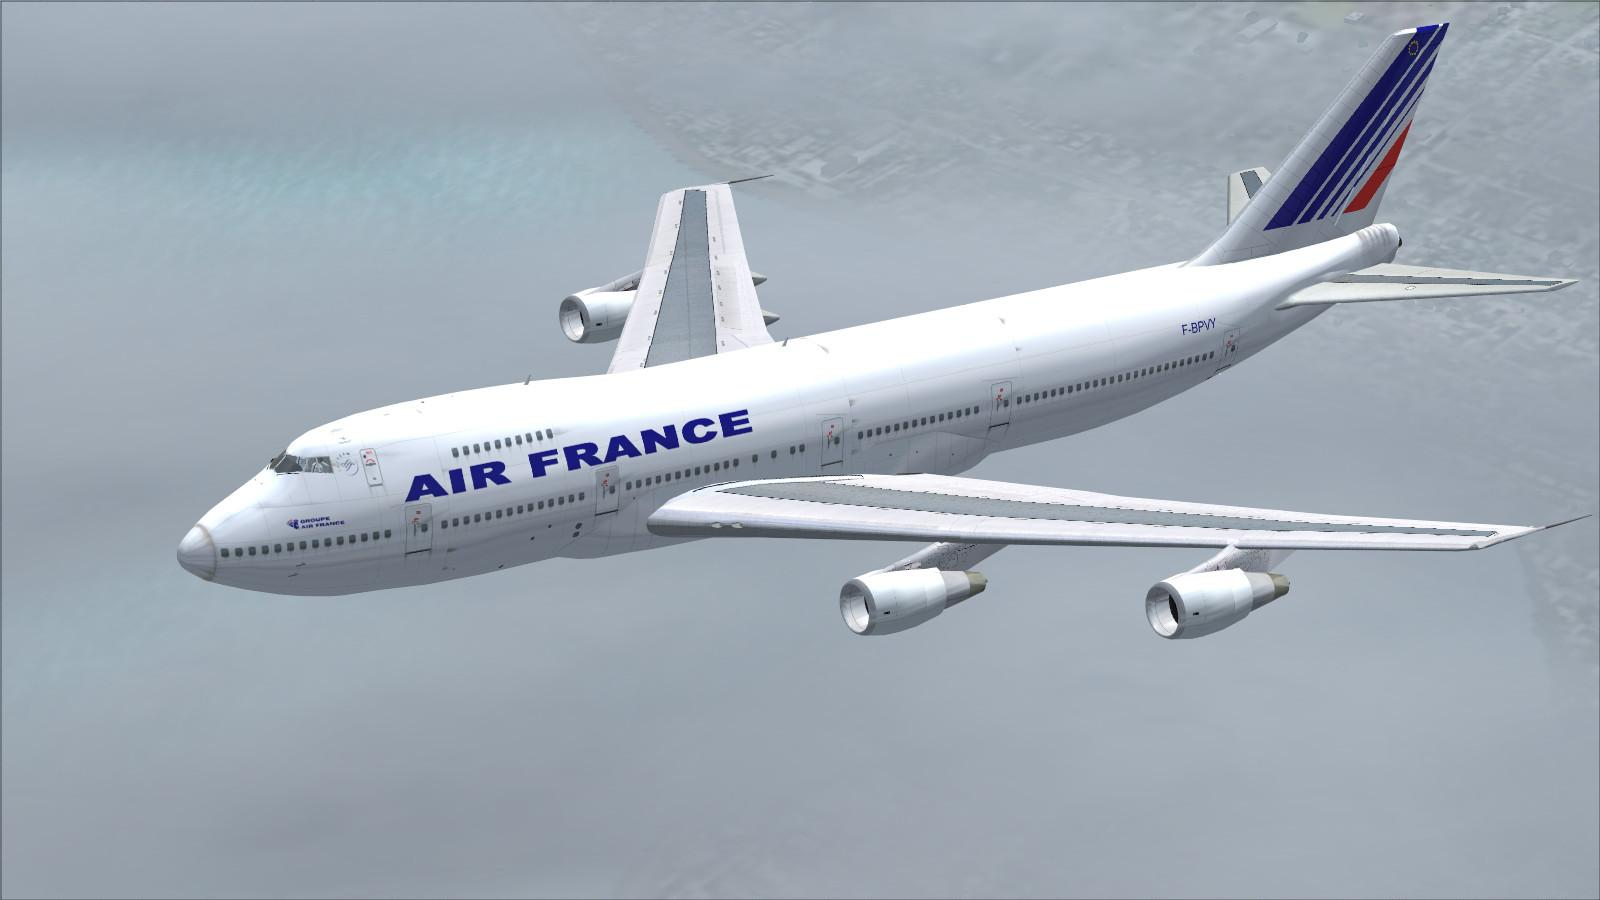 T l charger boeing 747 200 air france fs2004 rikoooo for Interieur 747 air france